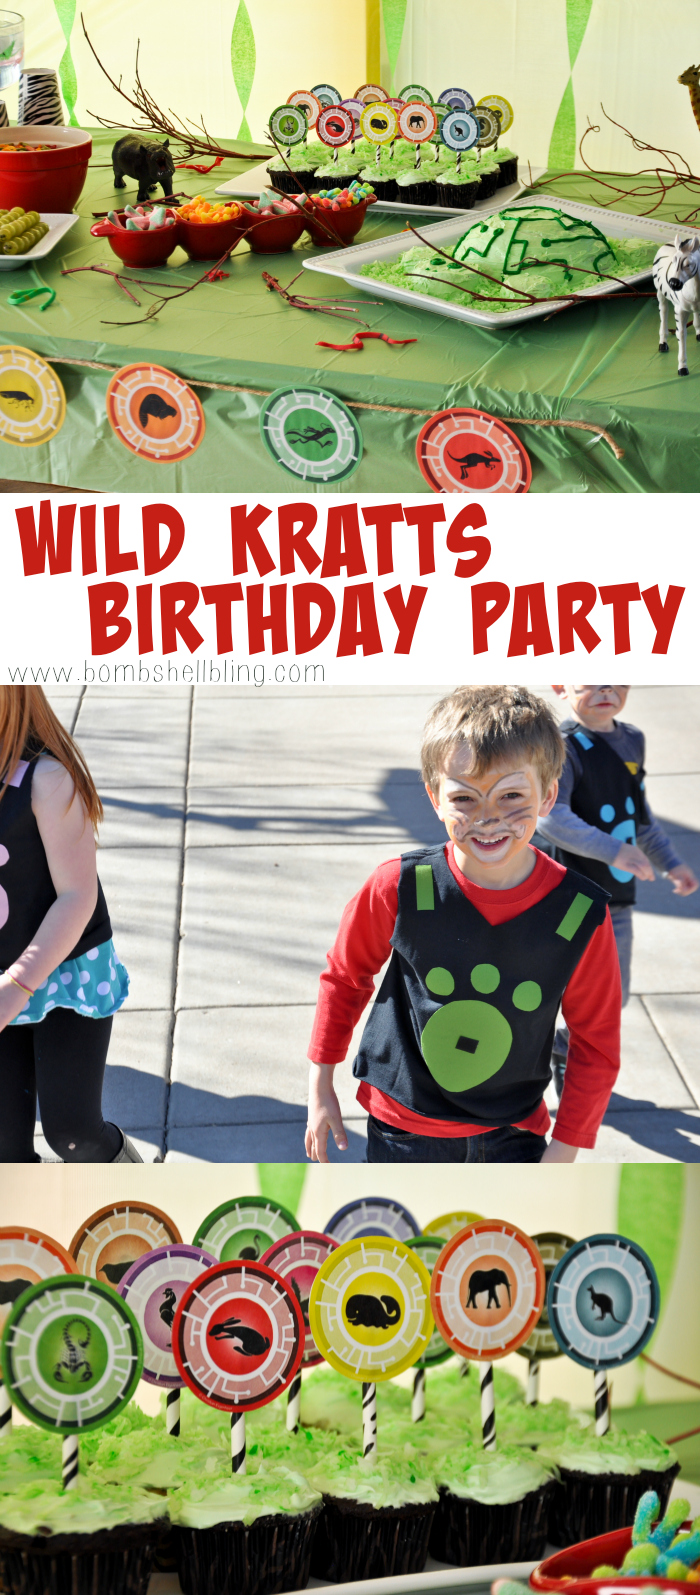 This Wild Kratts birthday party is THE CUTEST!!!